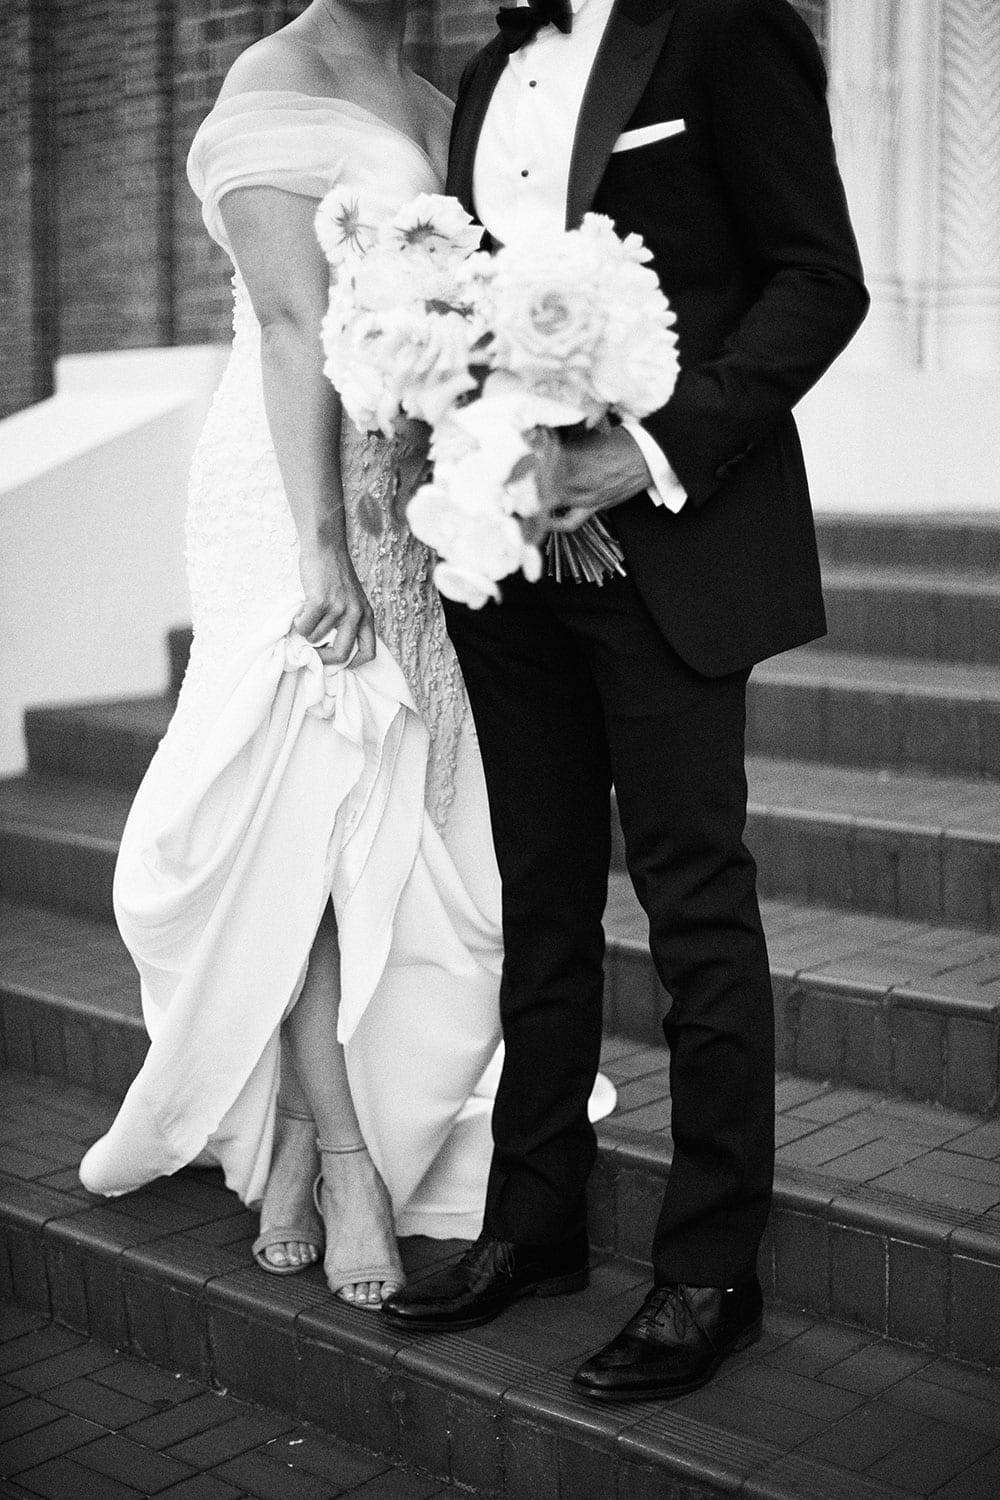 Vinka Design Features Real Weddings - bride in custom made gown with stunning silhouette with groom on steps in black and white